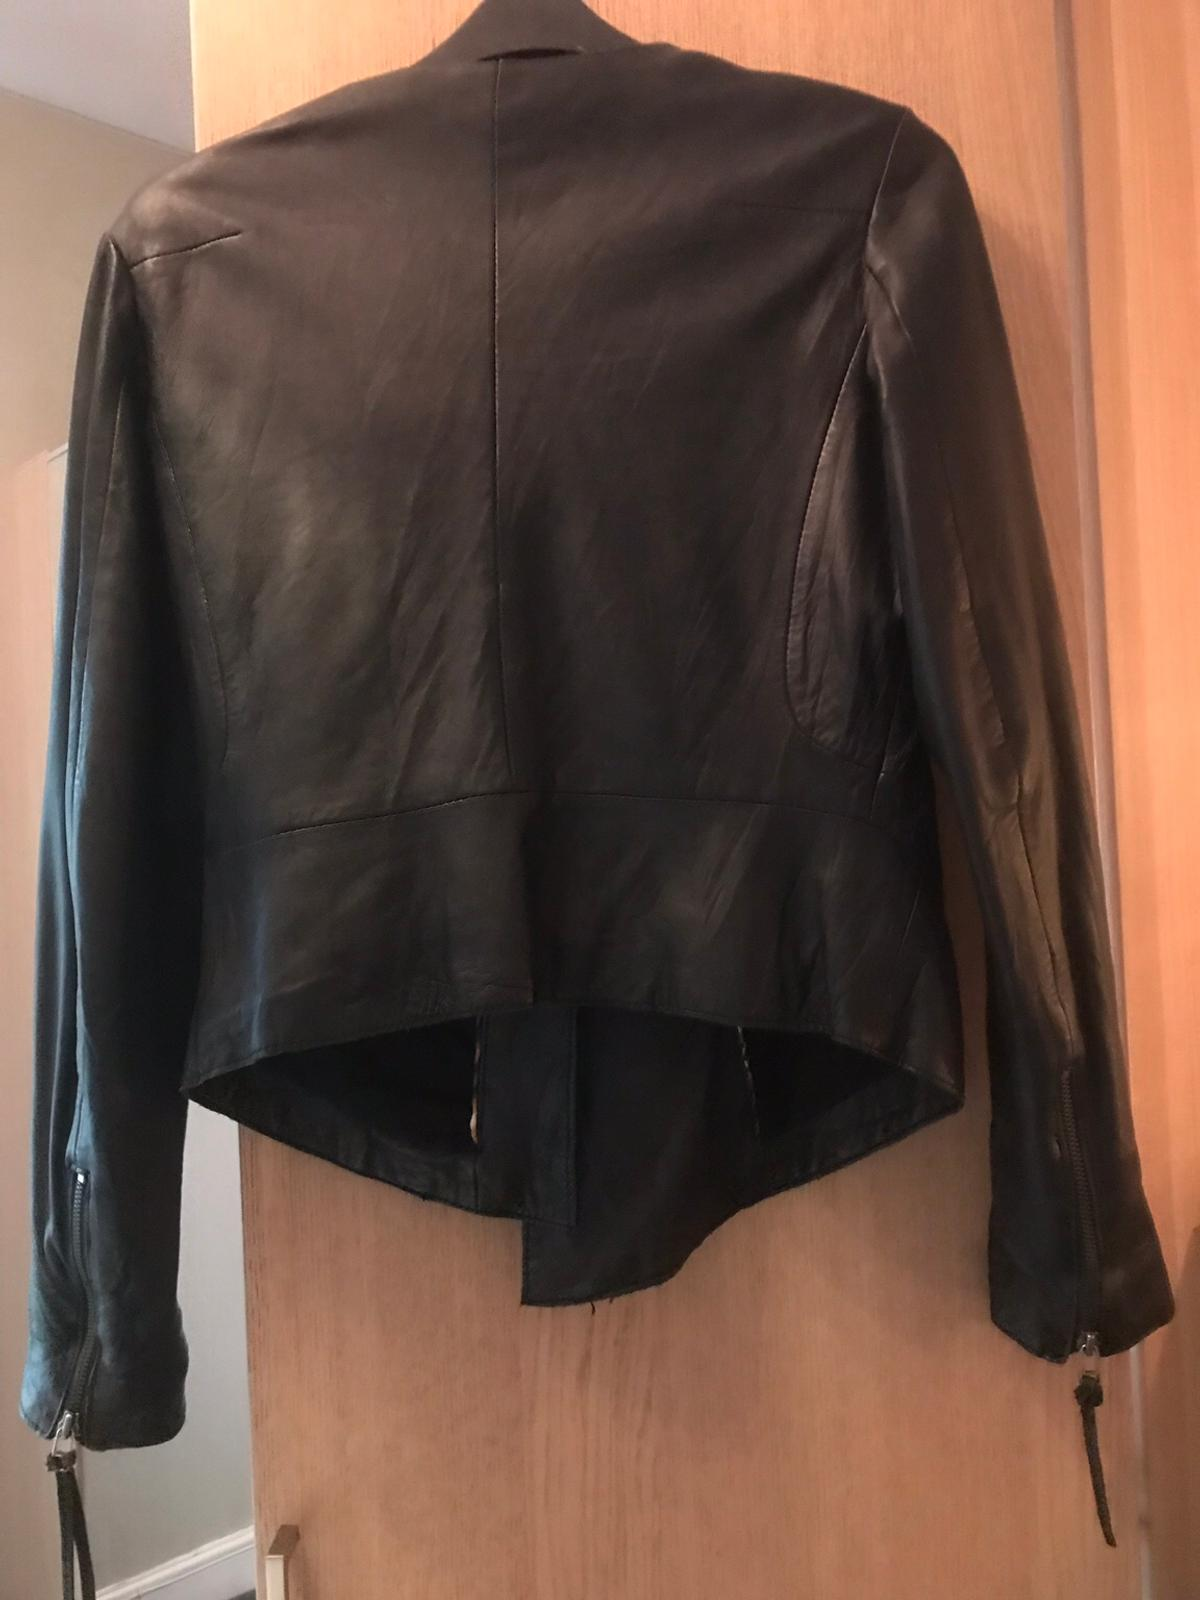 48e82eb2f Kate Moss Leather Jacket Size 14 in B67 Sandwell for £45.00 for sale ...